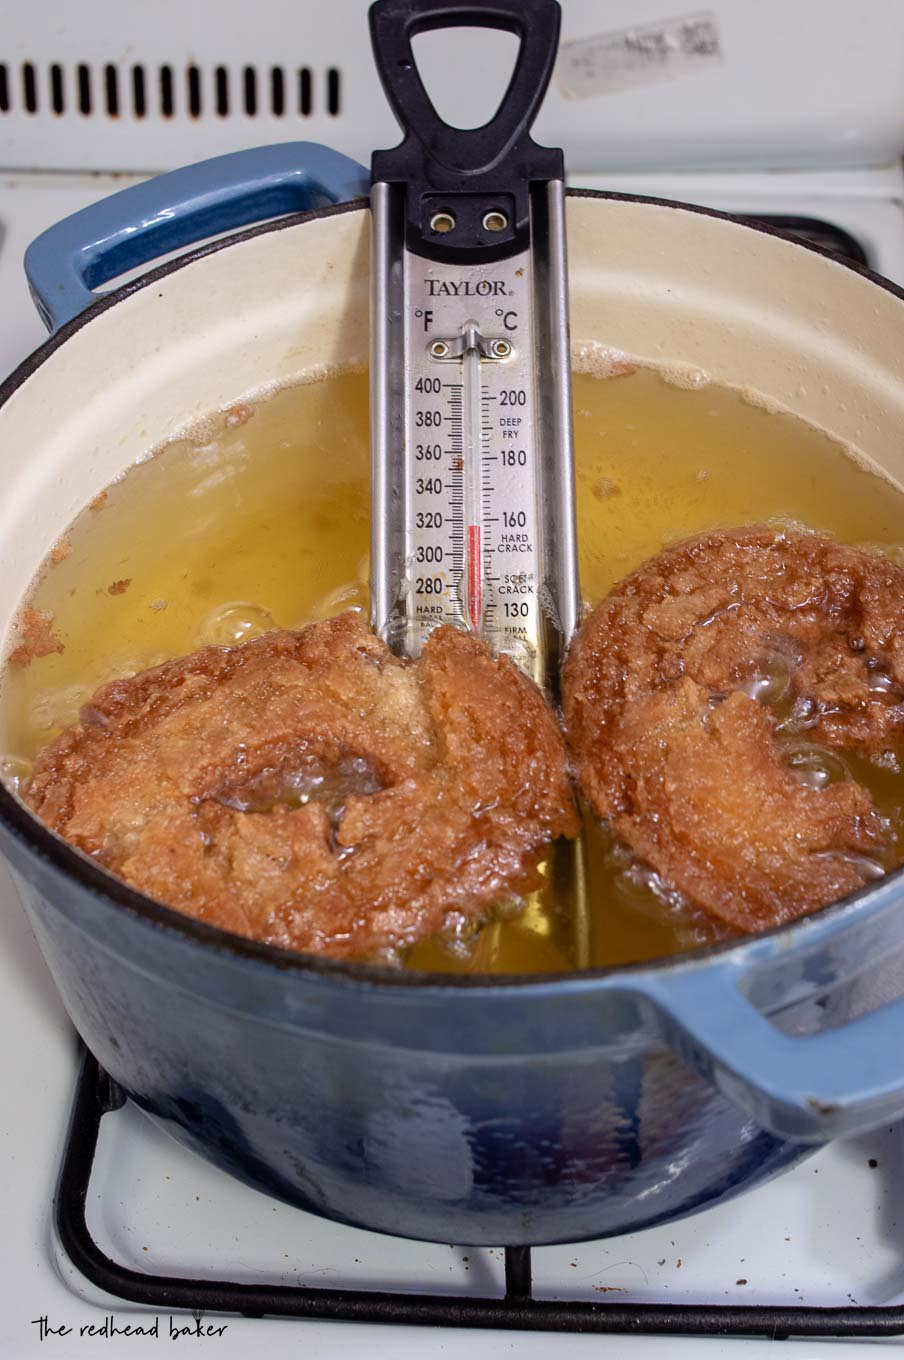 Two cider doughnuts being fried in oil.